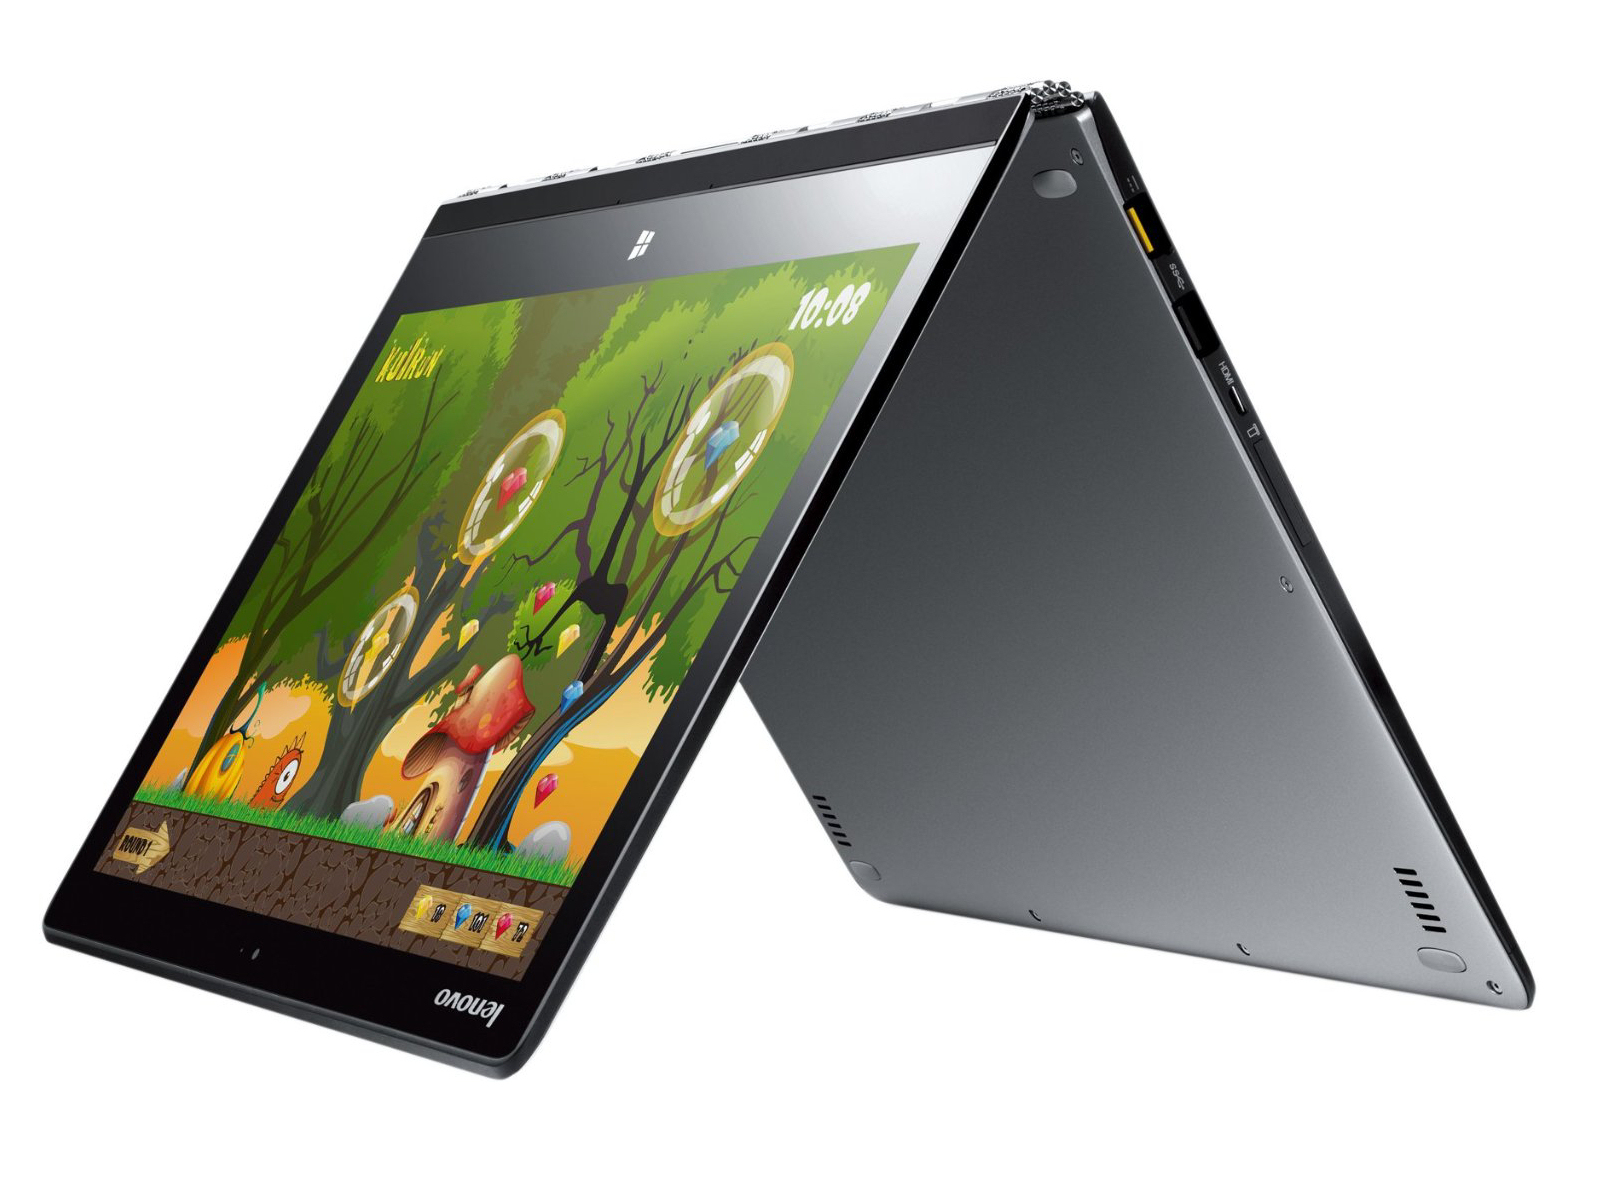 Tablet Lenovo Yoga 3 Pro: review, reviews 40